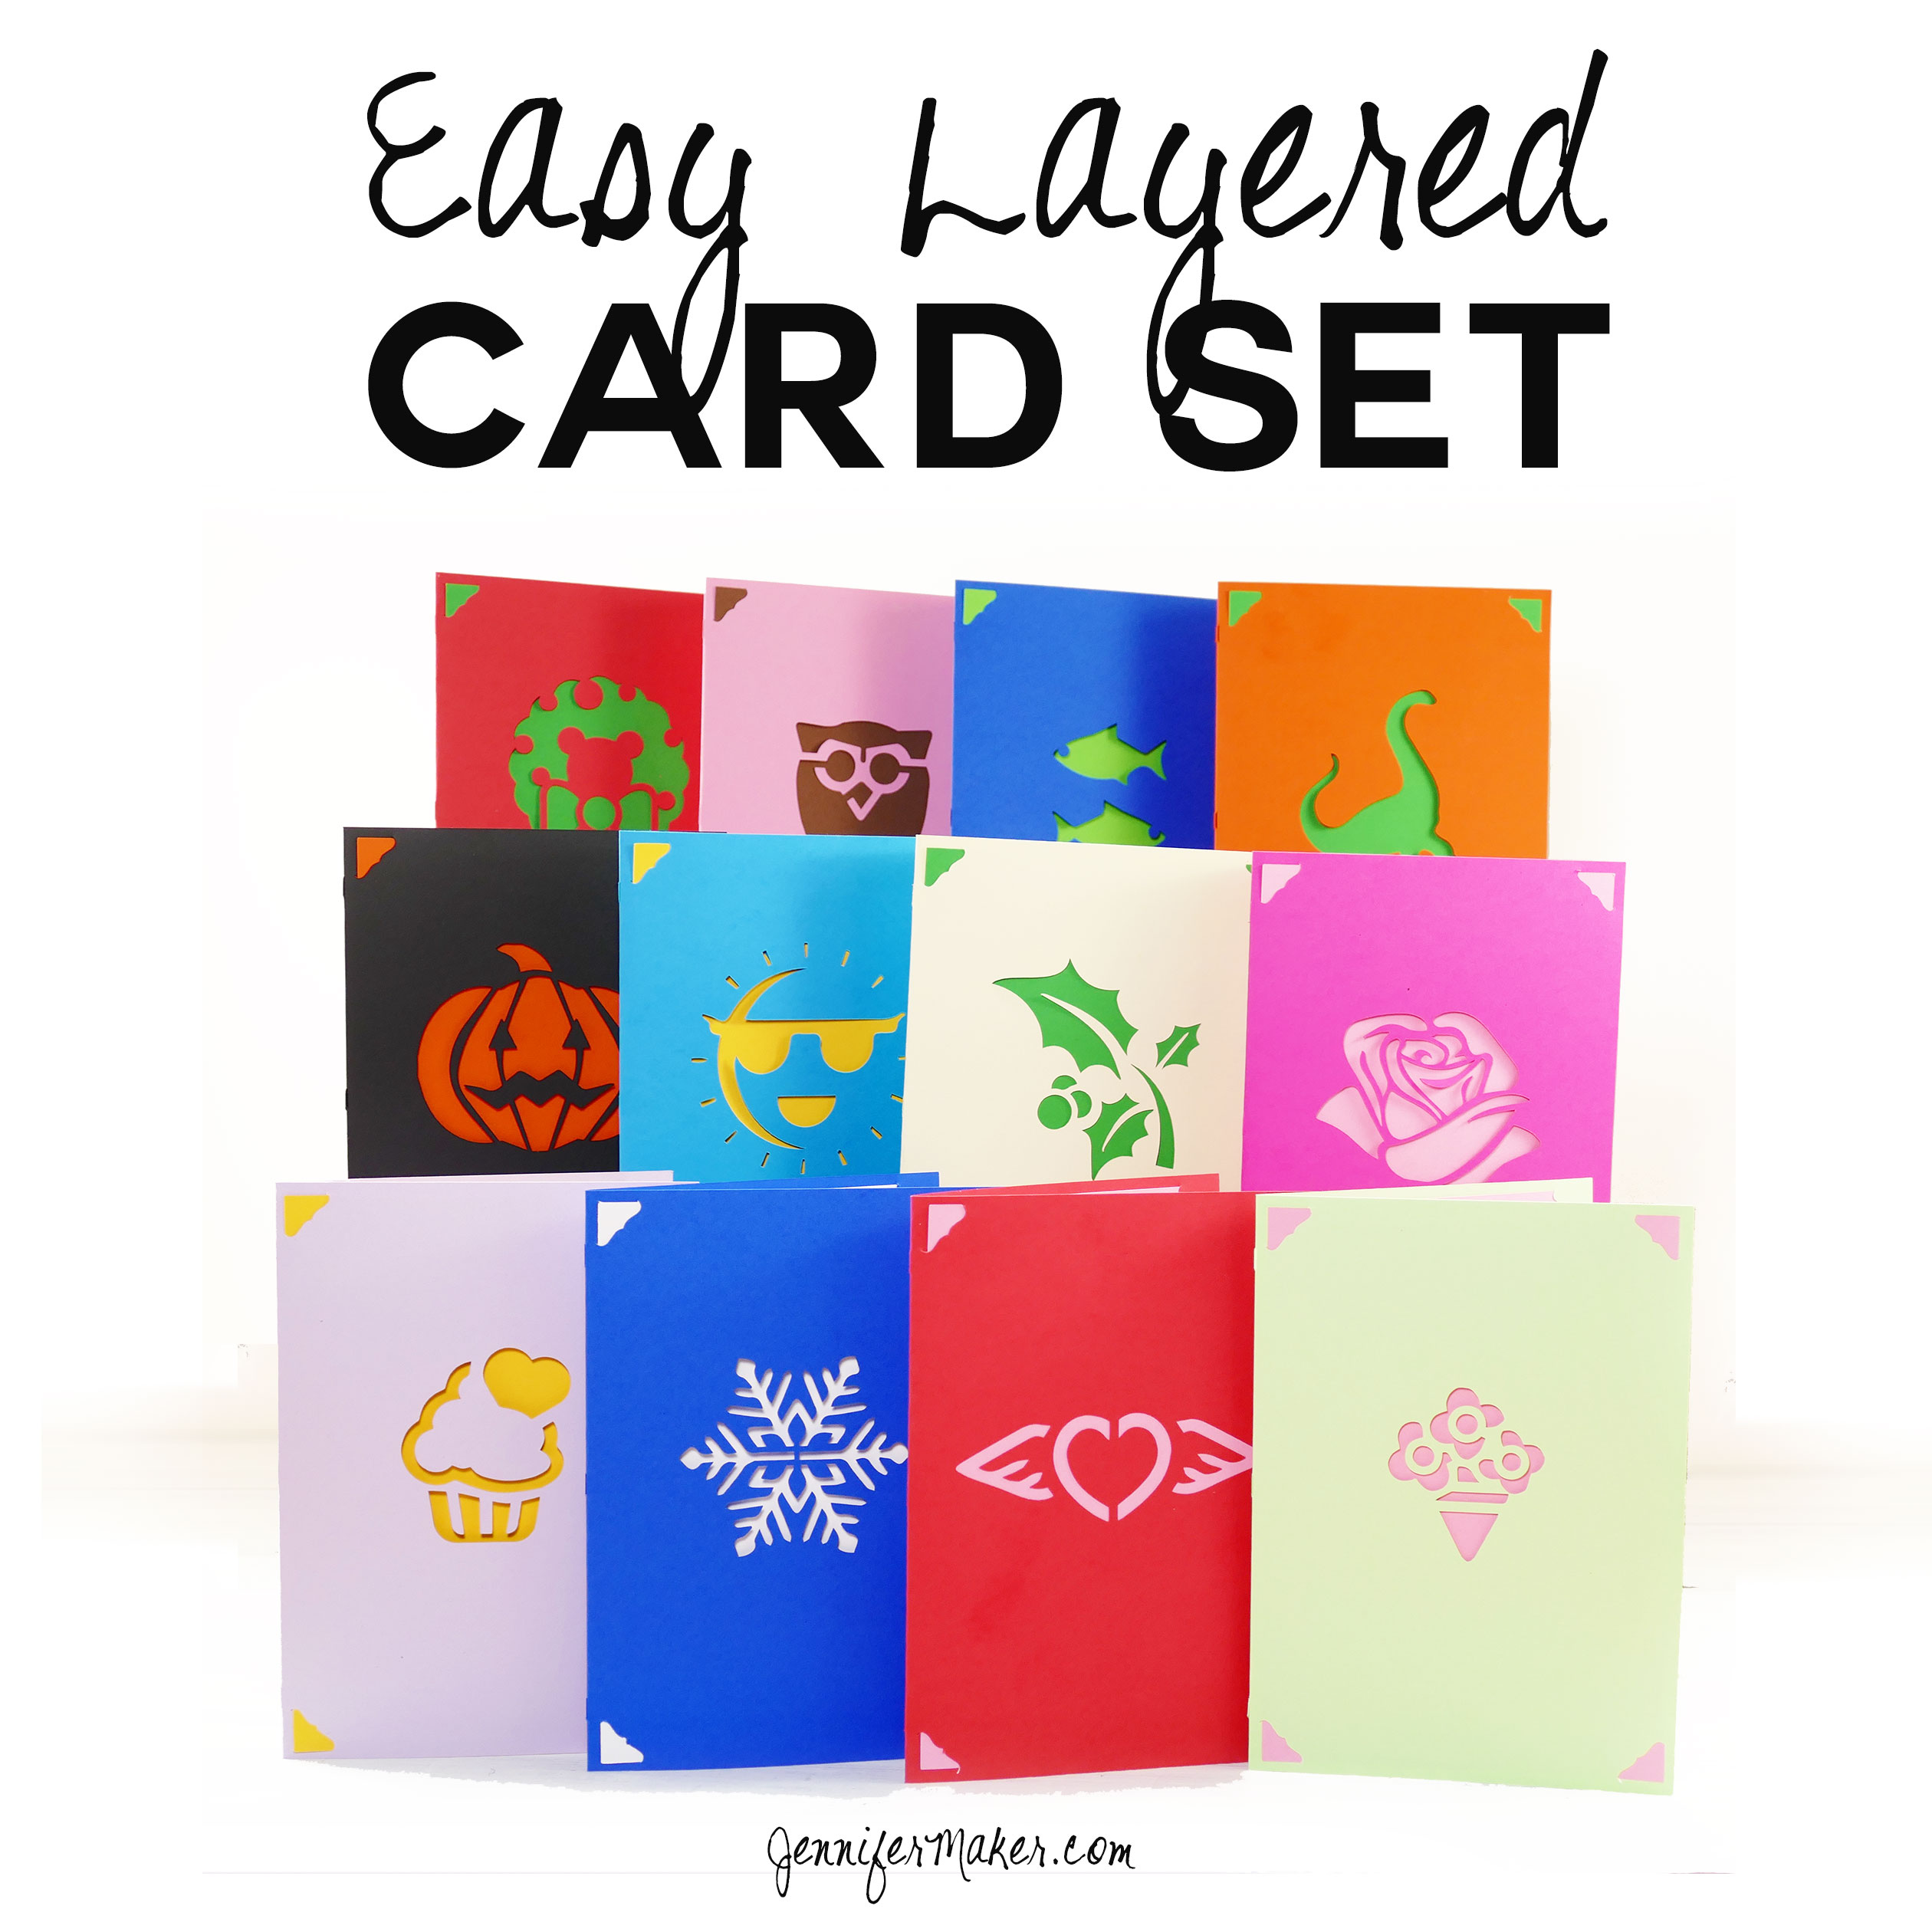 Diy Greeting Card Set Fast Easy Layers Jennifer Maker